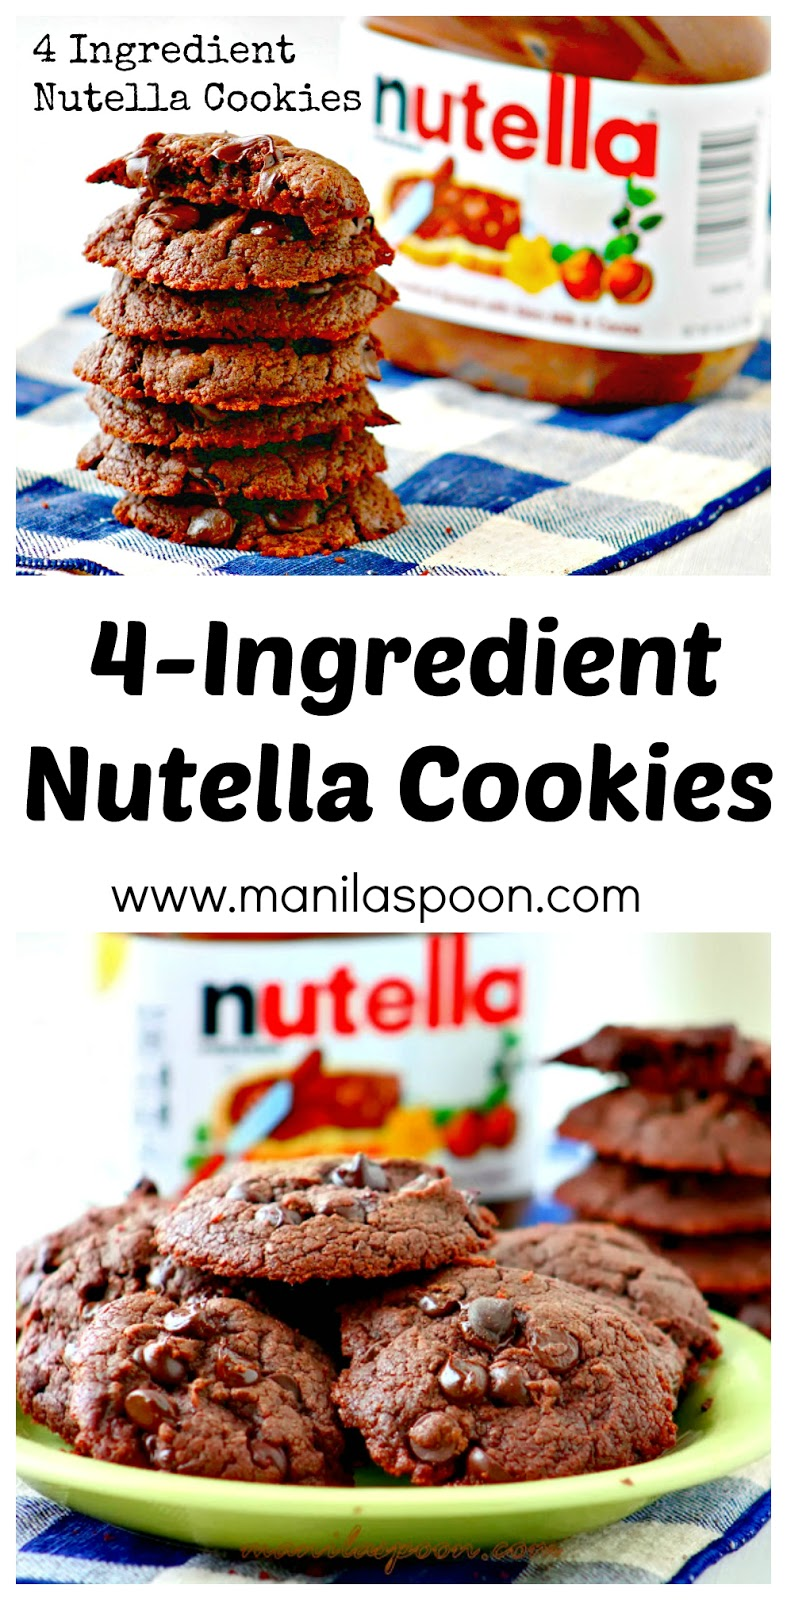 Super-easy and truly yummy are these 4-Ingredient Nutella Cookies! You must absolutely try this if you're a big Nutella fan! #4 #ingredient #nutella #cookies #easy